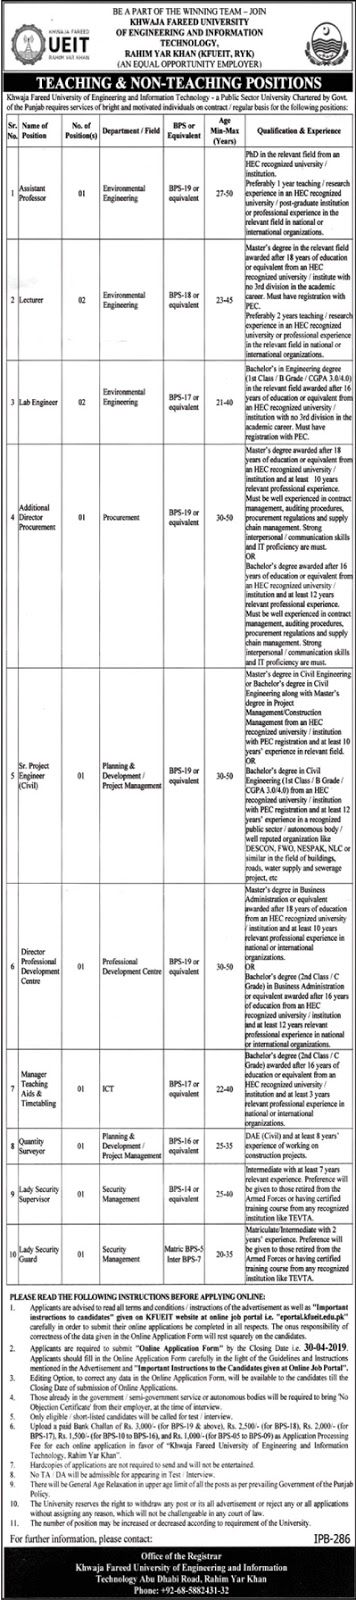 Khwaja Fareed Unviersity of Engineering & Information Technology (KFUEIT) Jobs 2019